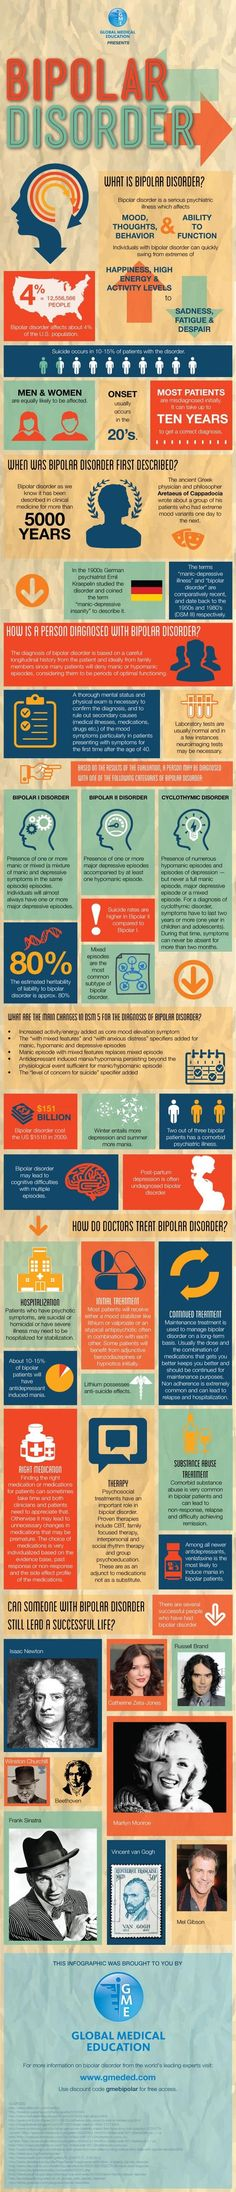 Psychology : Bipolar Disorder [INFOGRAPHIC] #Bipolar #Disorder #infographic